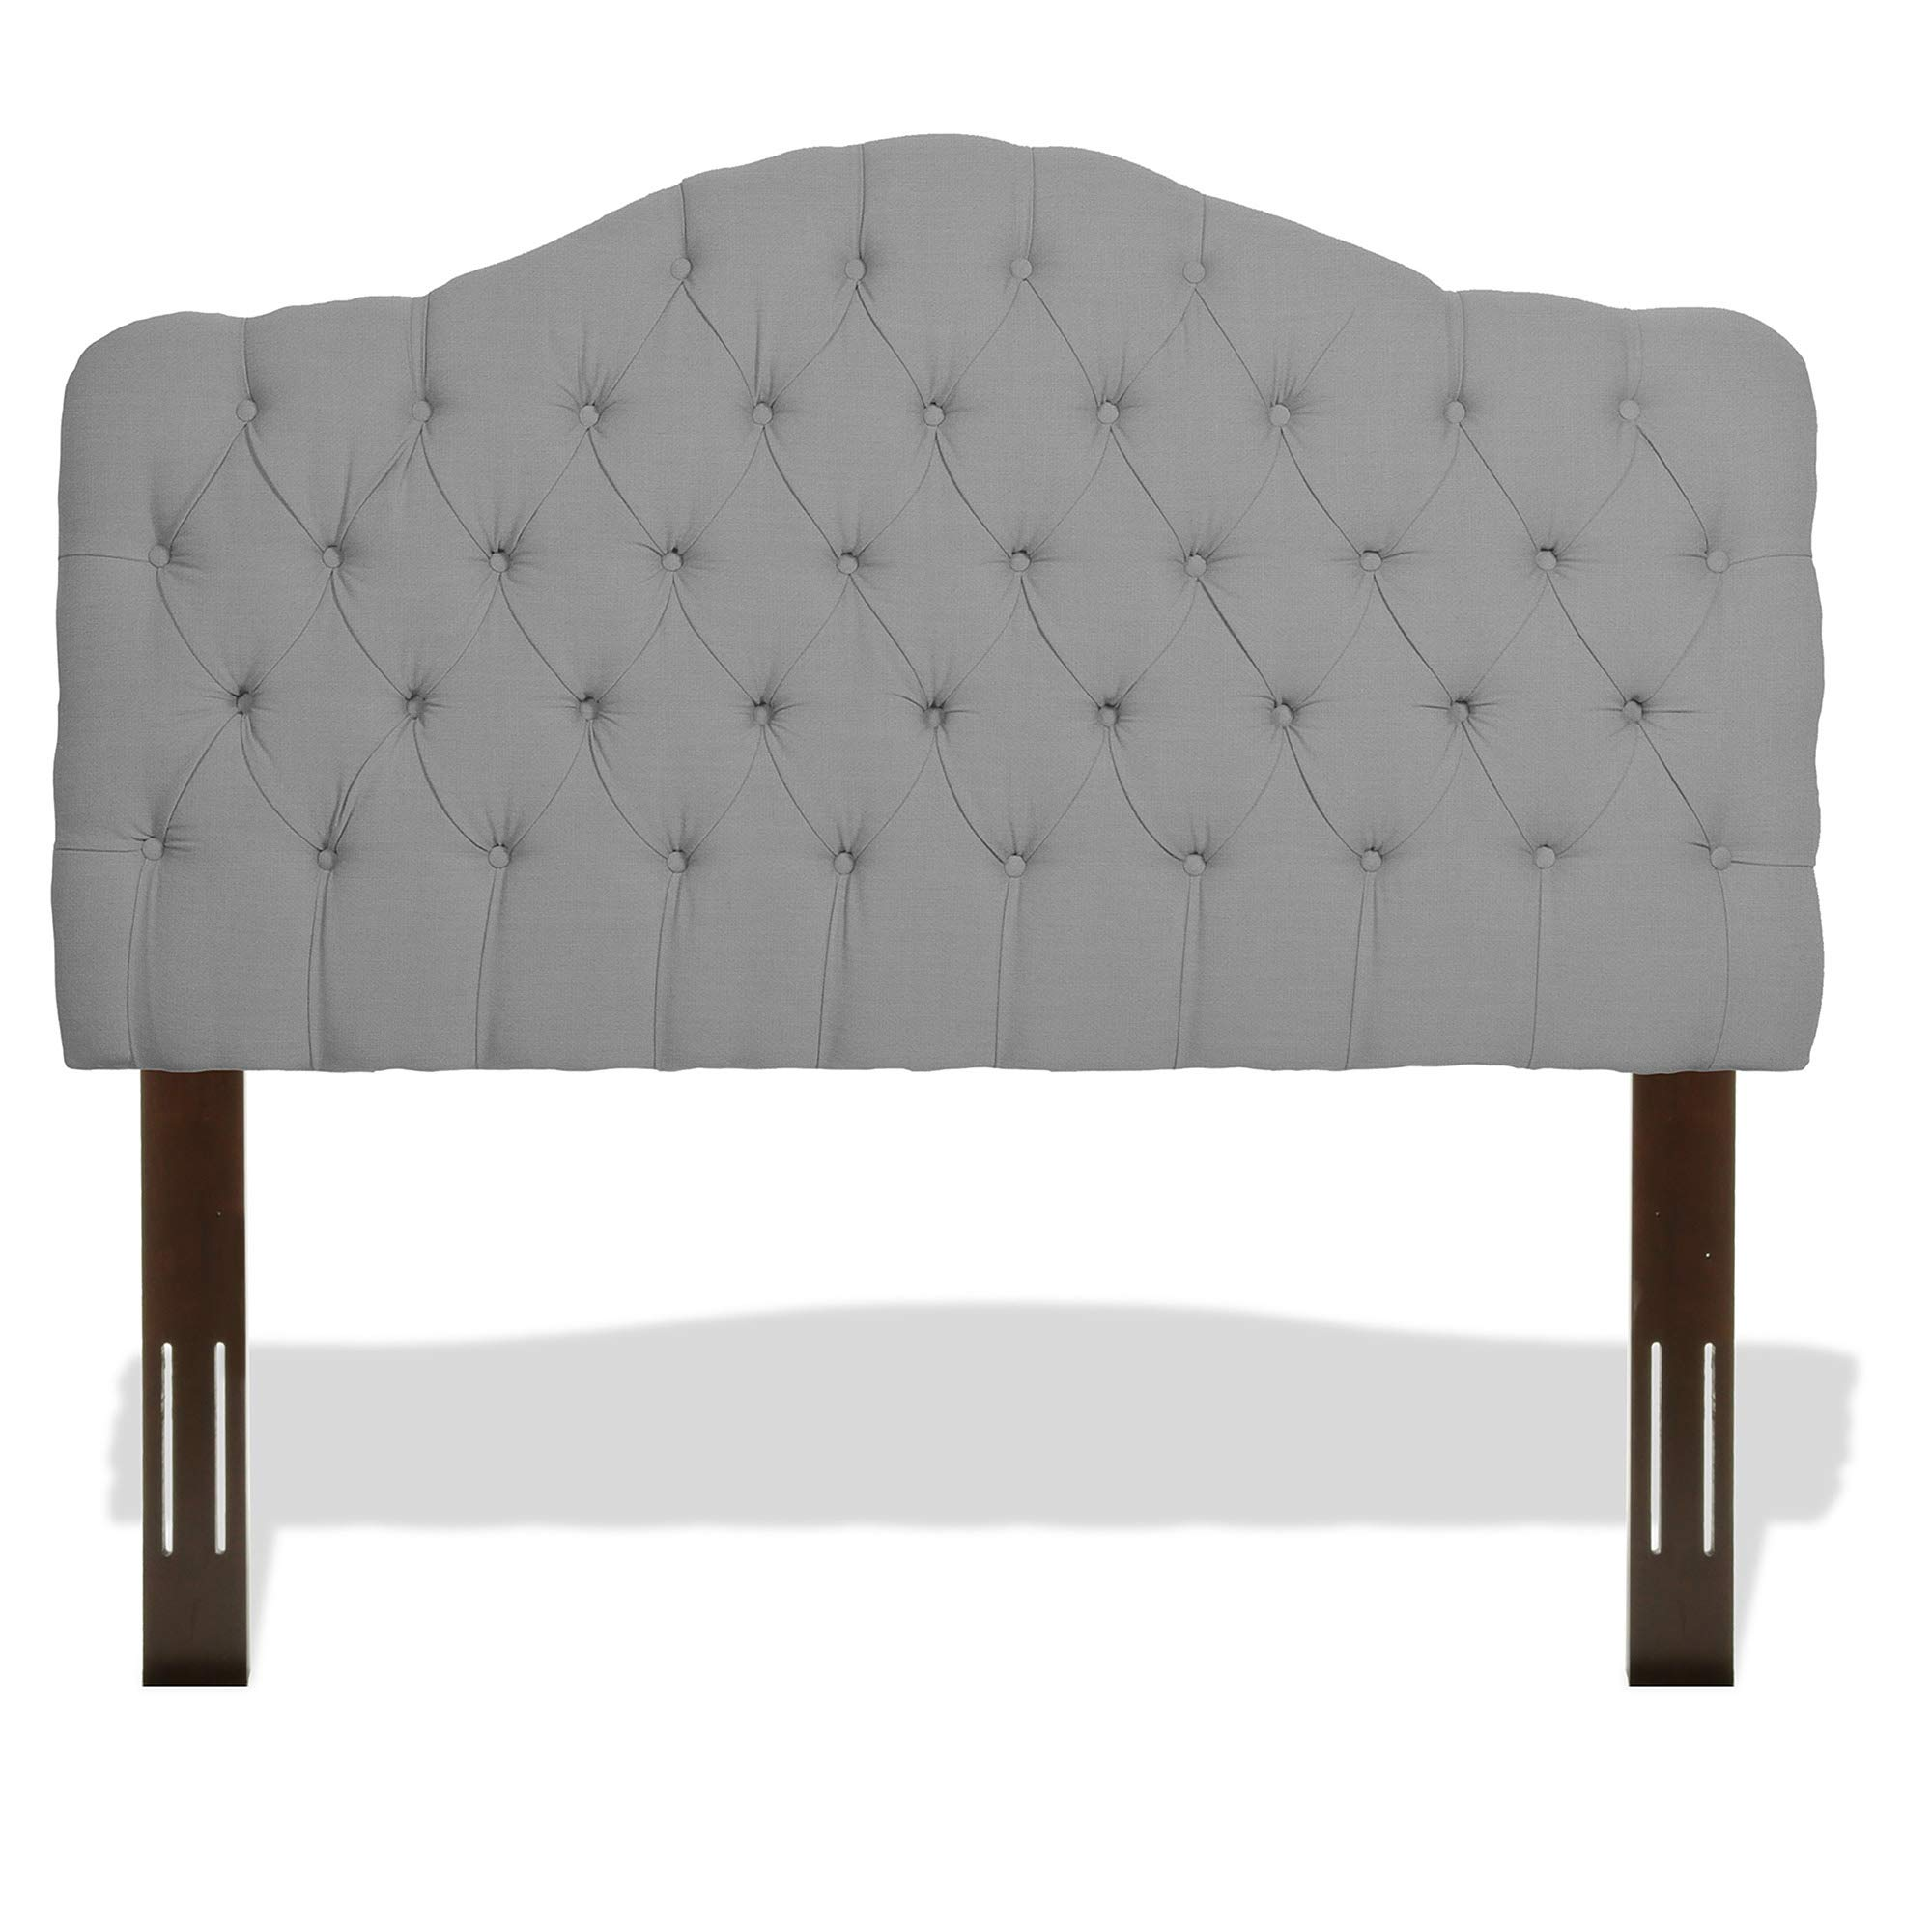 Leggett & Platt Martinique Button-Tuft Upholstered Headboard with Adjustable Height, Putty Finish, Full / Queen